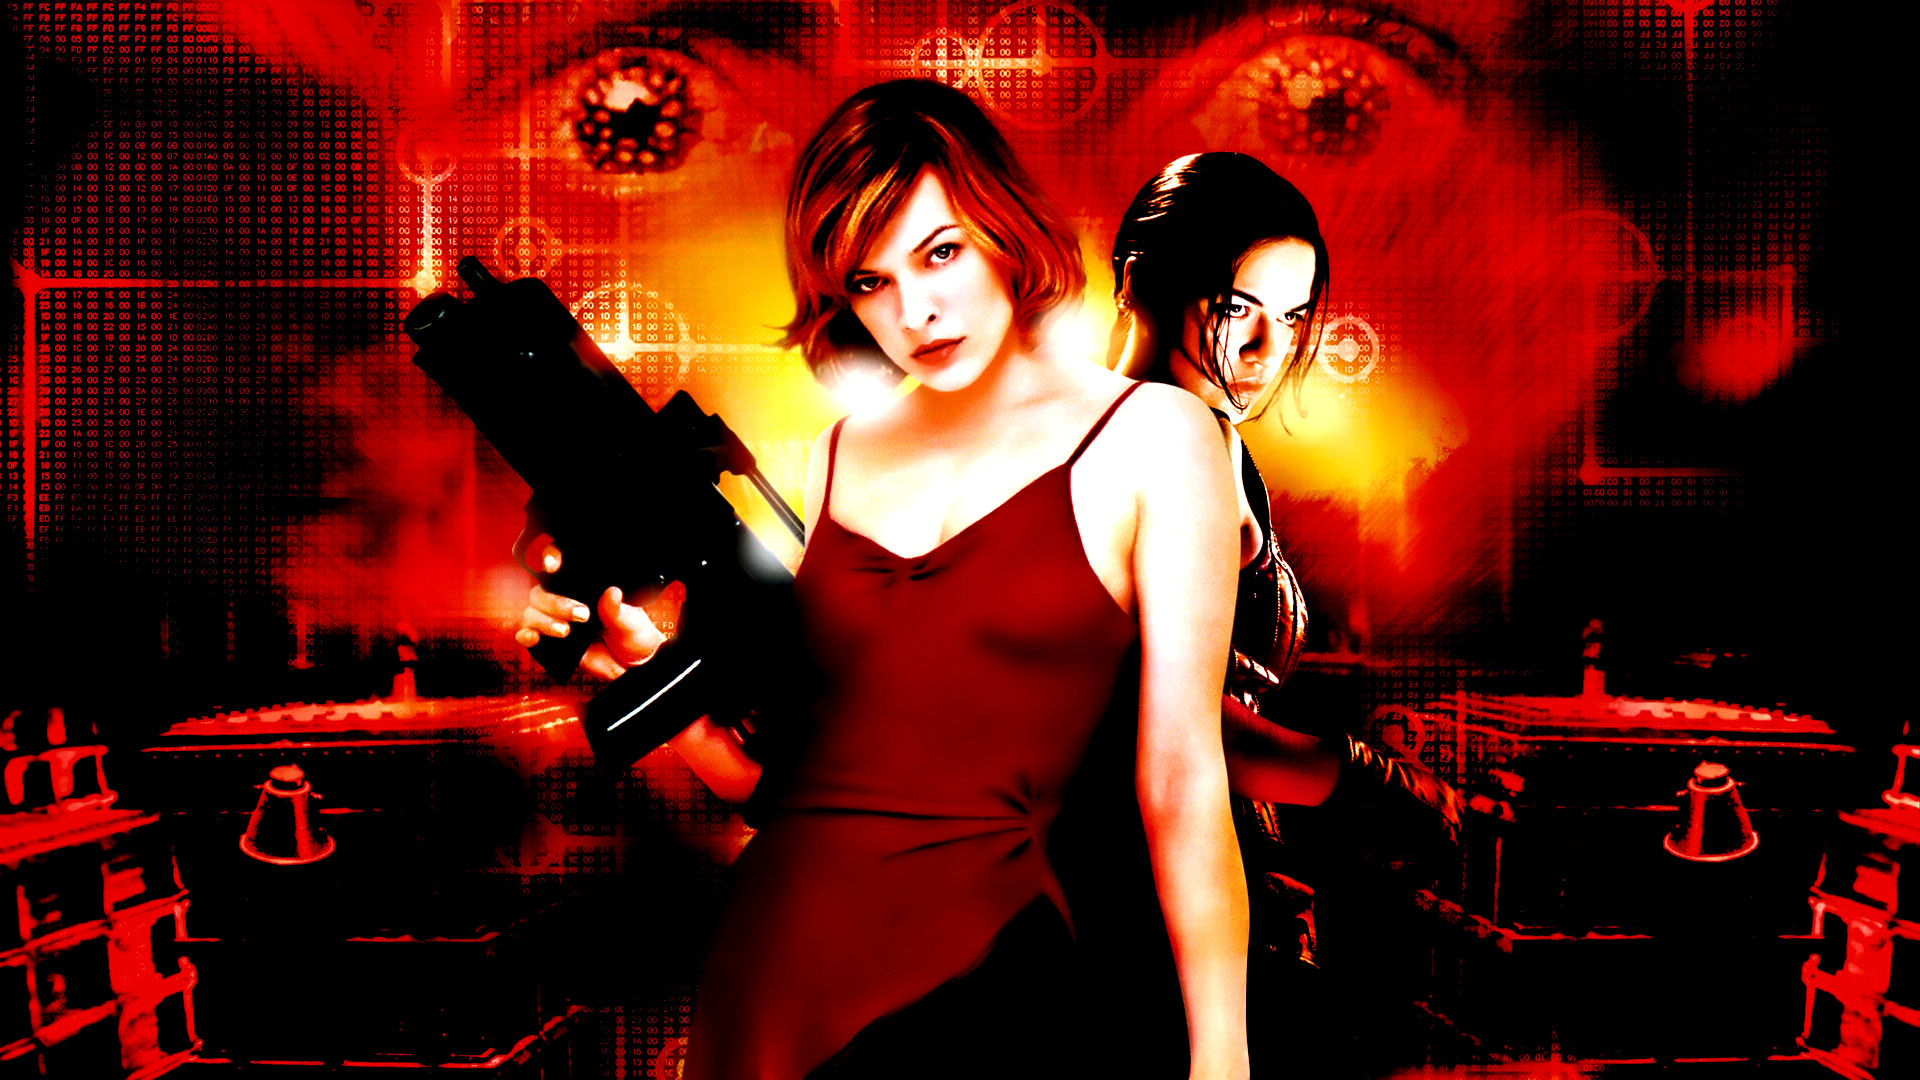 resident evil wallpapers pictures images